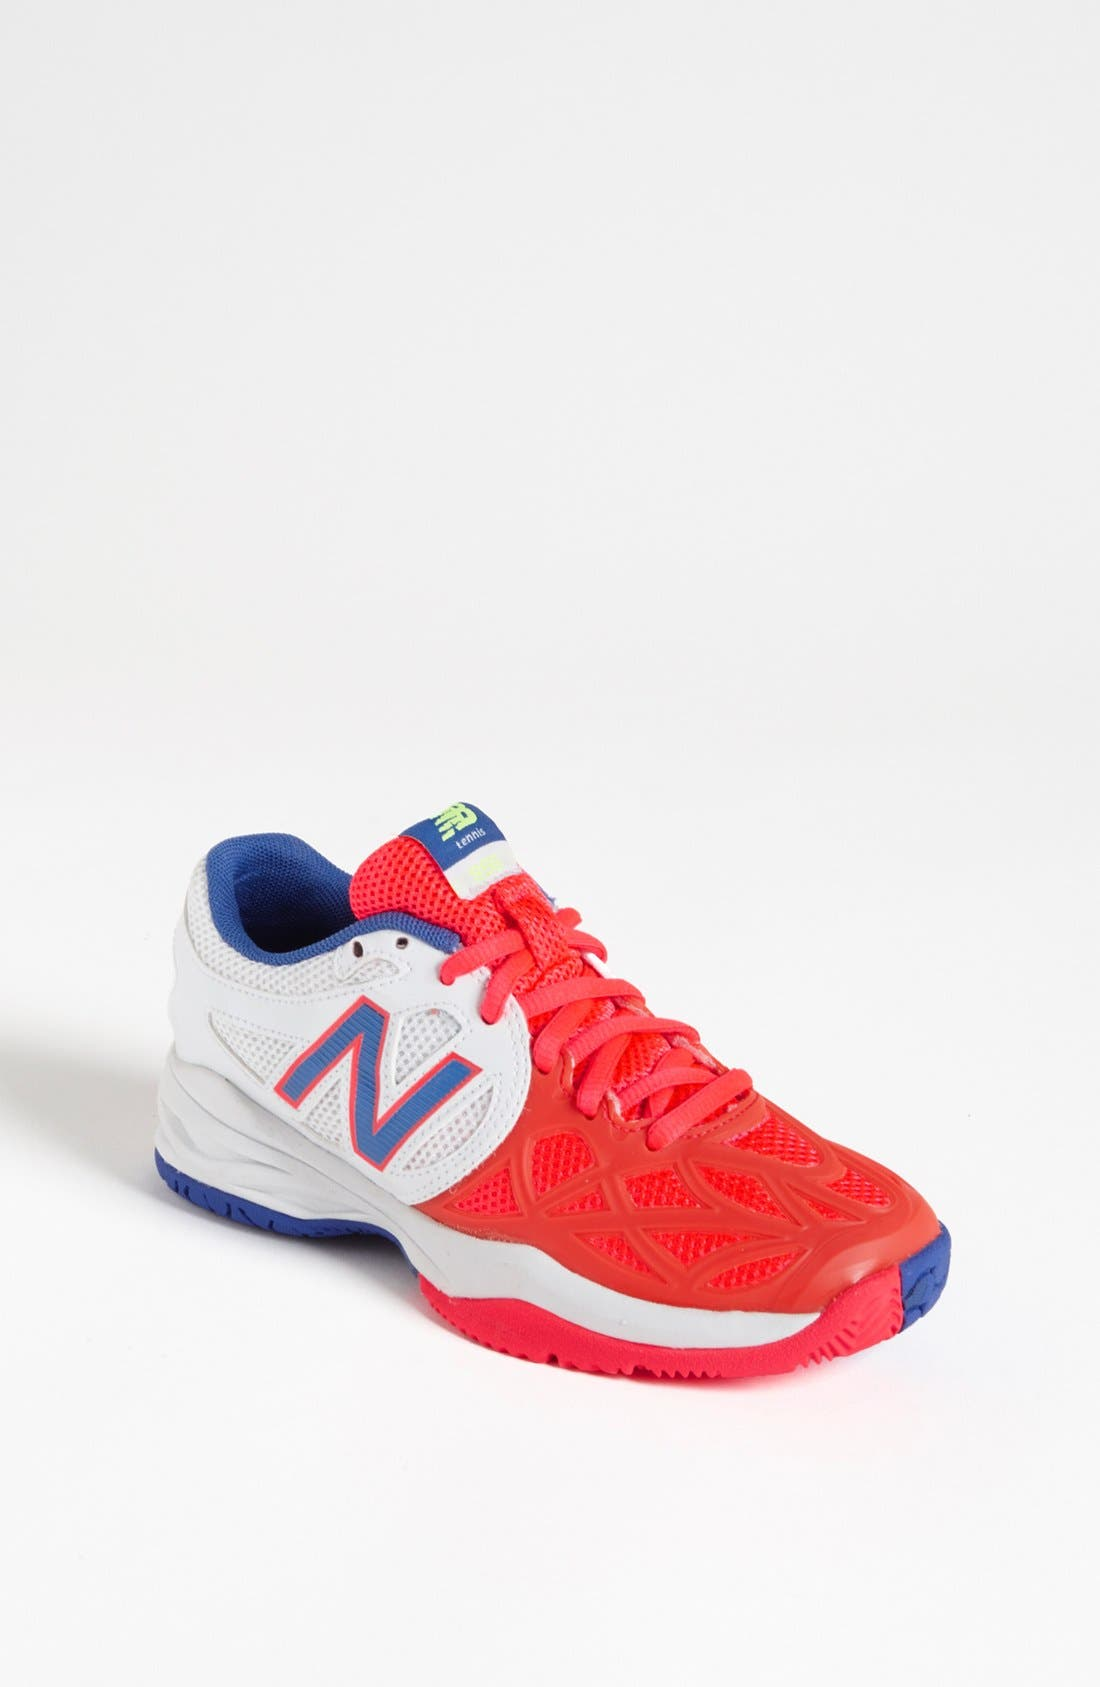 Main Image - New Balance Tennis Shoe (Toddler, Little Kid & Big Kid)